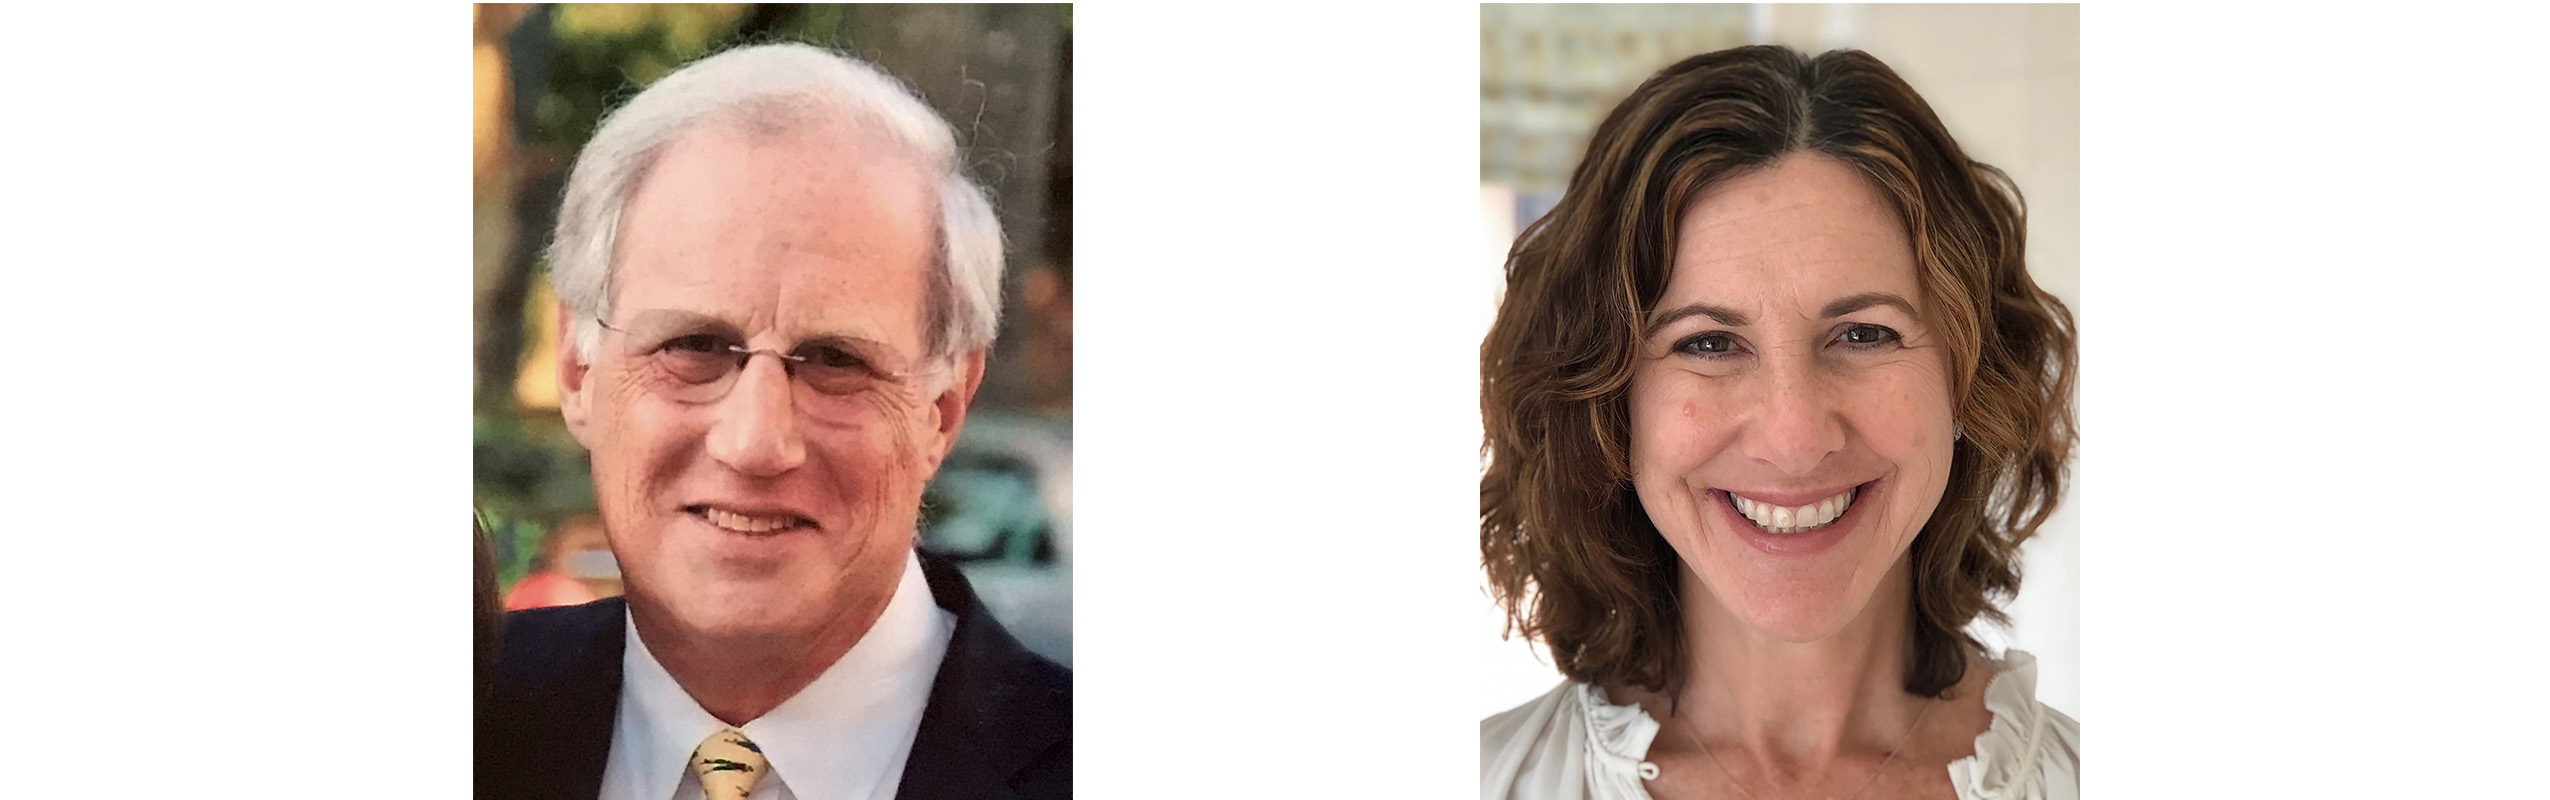 Benefit 2020 Honorees - Fred Claar and Lois Kohn-Claar